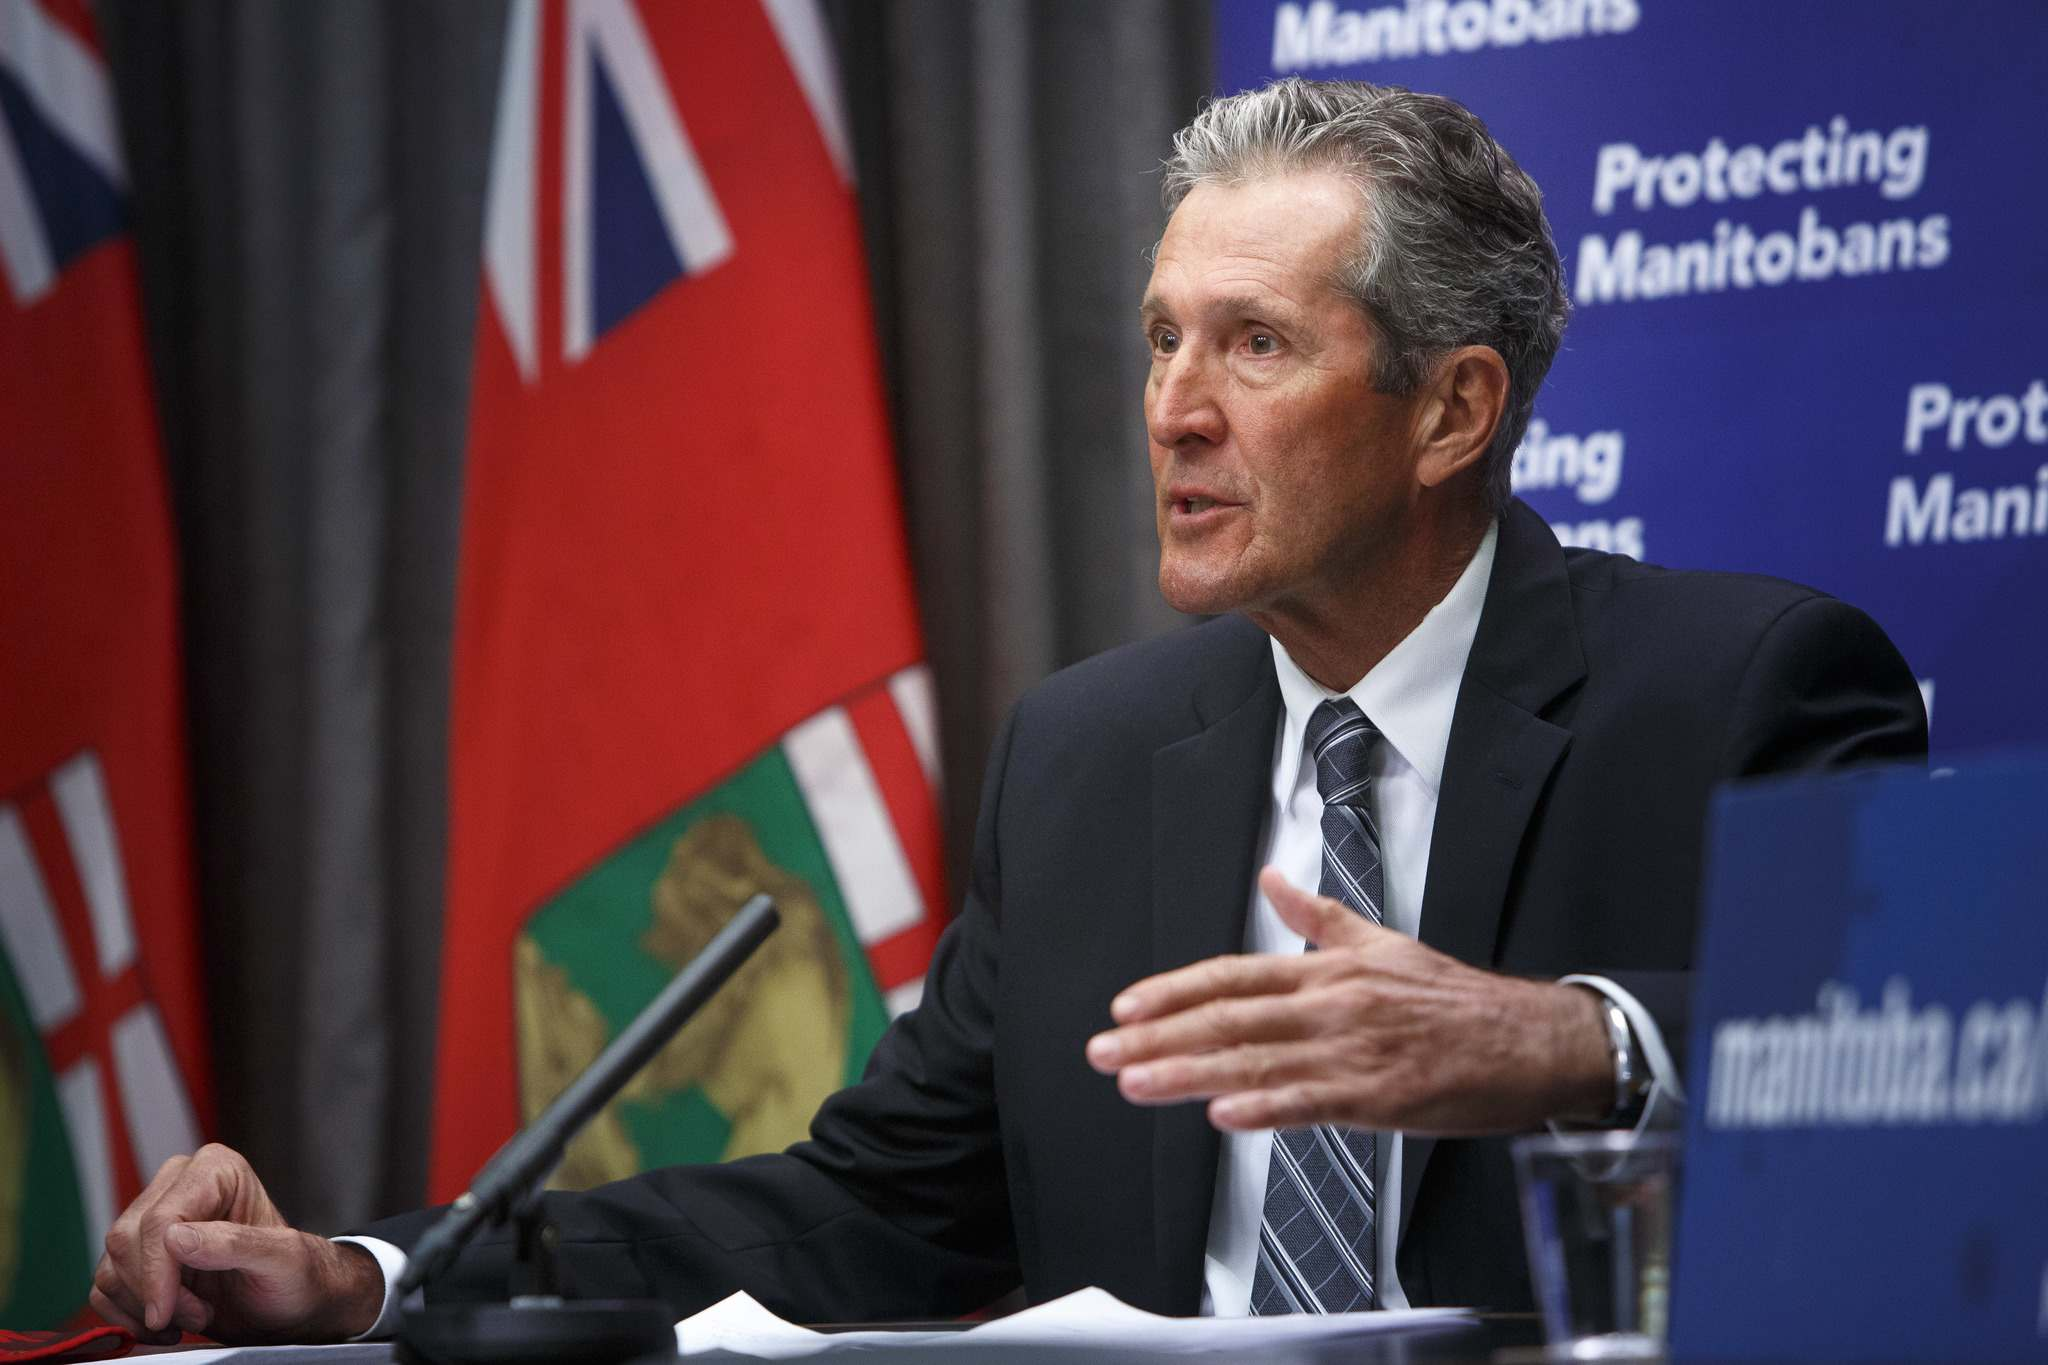 Premier Brian Pallister announced Thursday that the provincial government has chosen Xplornet Communications to expand high-speed internet and cellular access to rural and northern communities. Under the deal, approximately 125,000 more people will now have access to high-speed internet. (Winnipeg Free Press)</p></p>